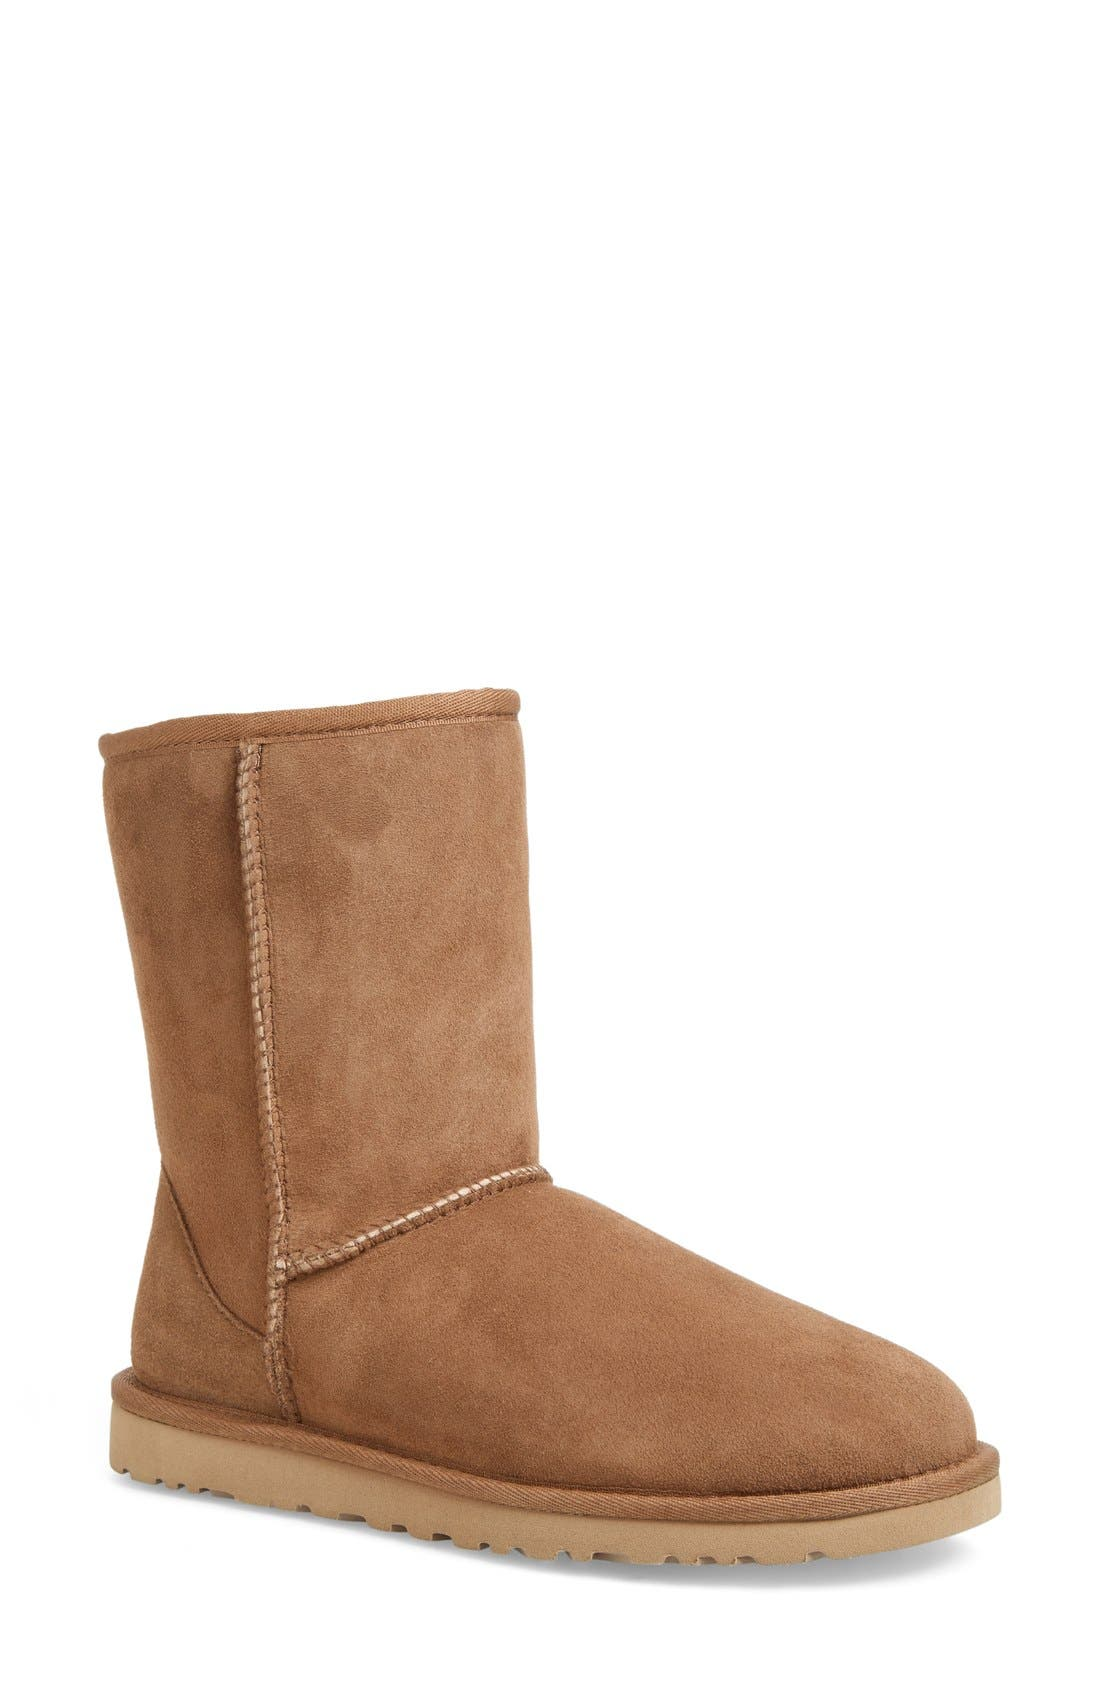 Alternate Image 1 Selected - UGG® 'Classic Short' Boot (Women)